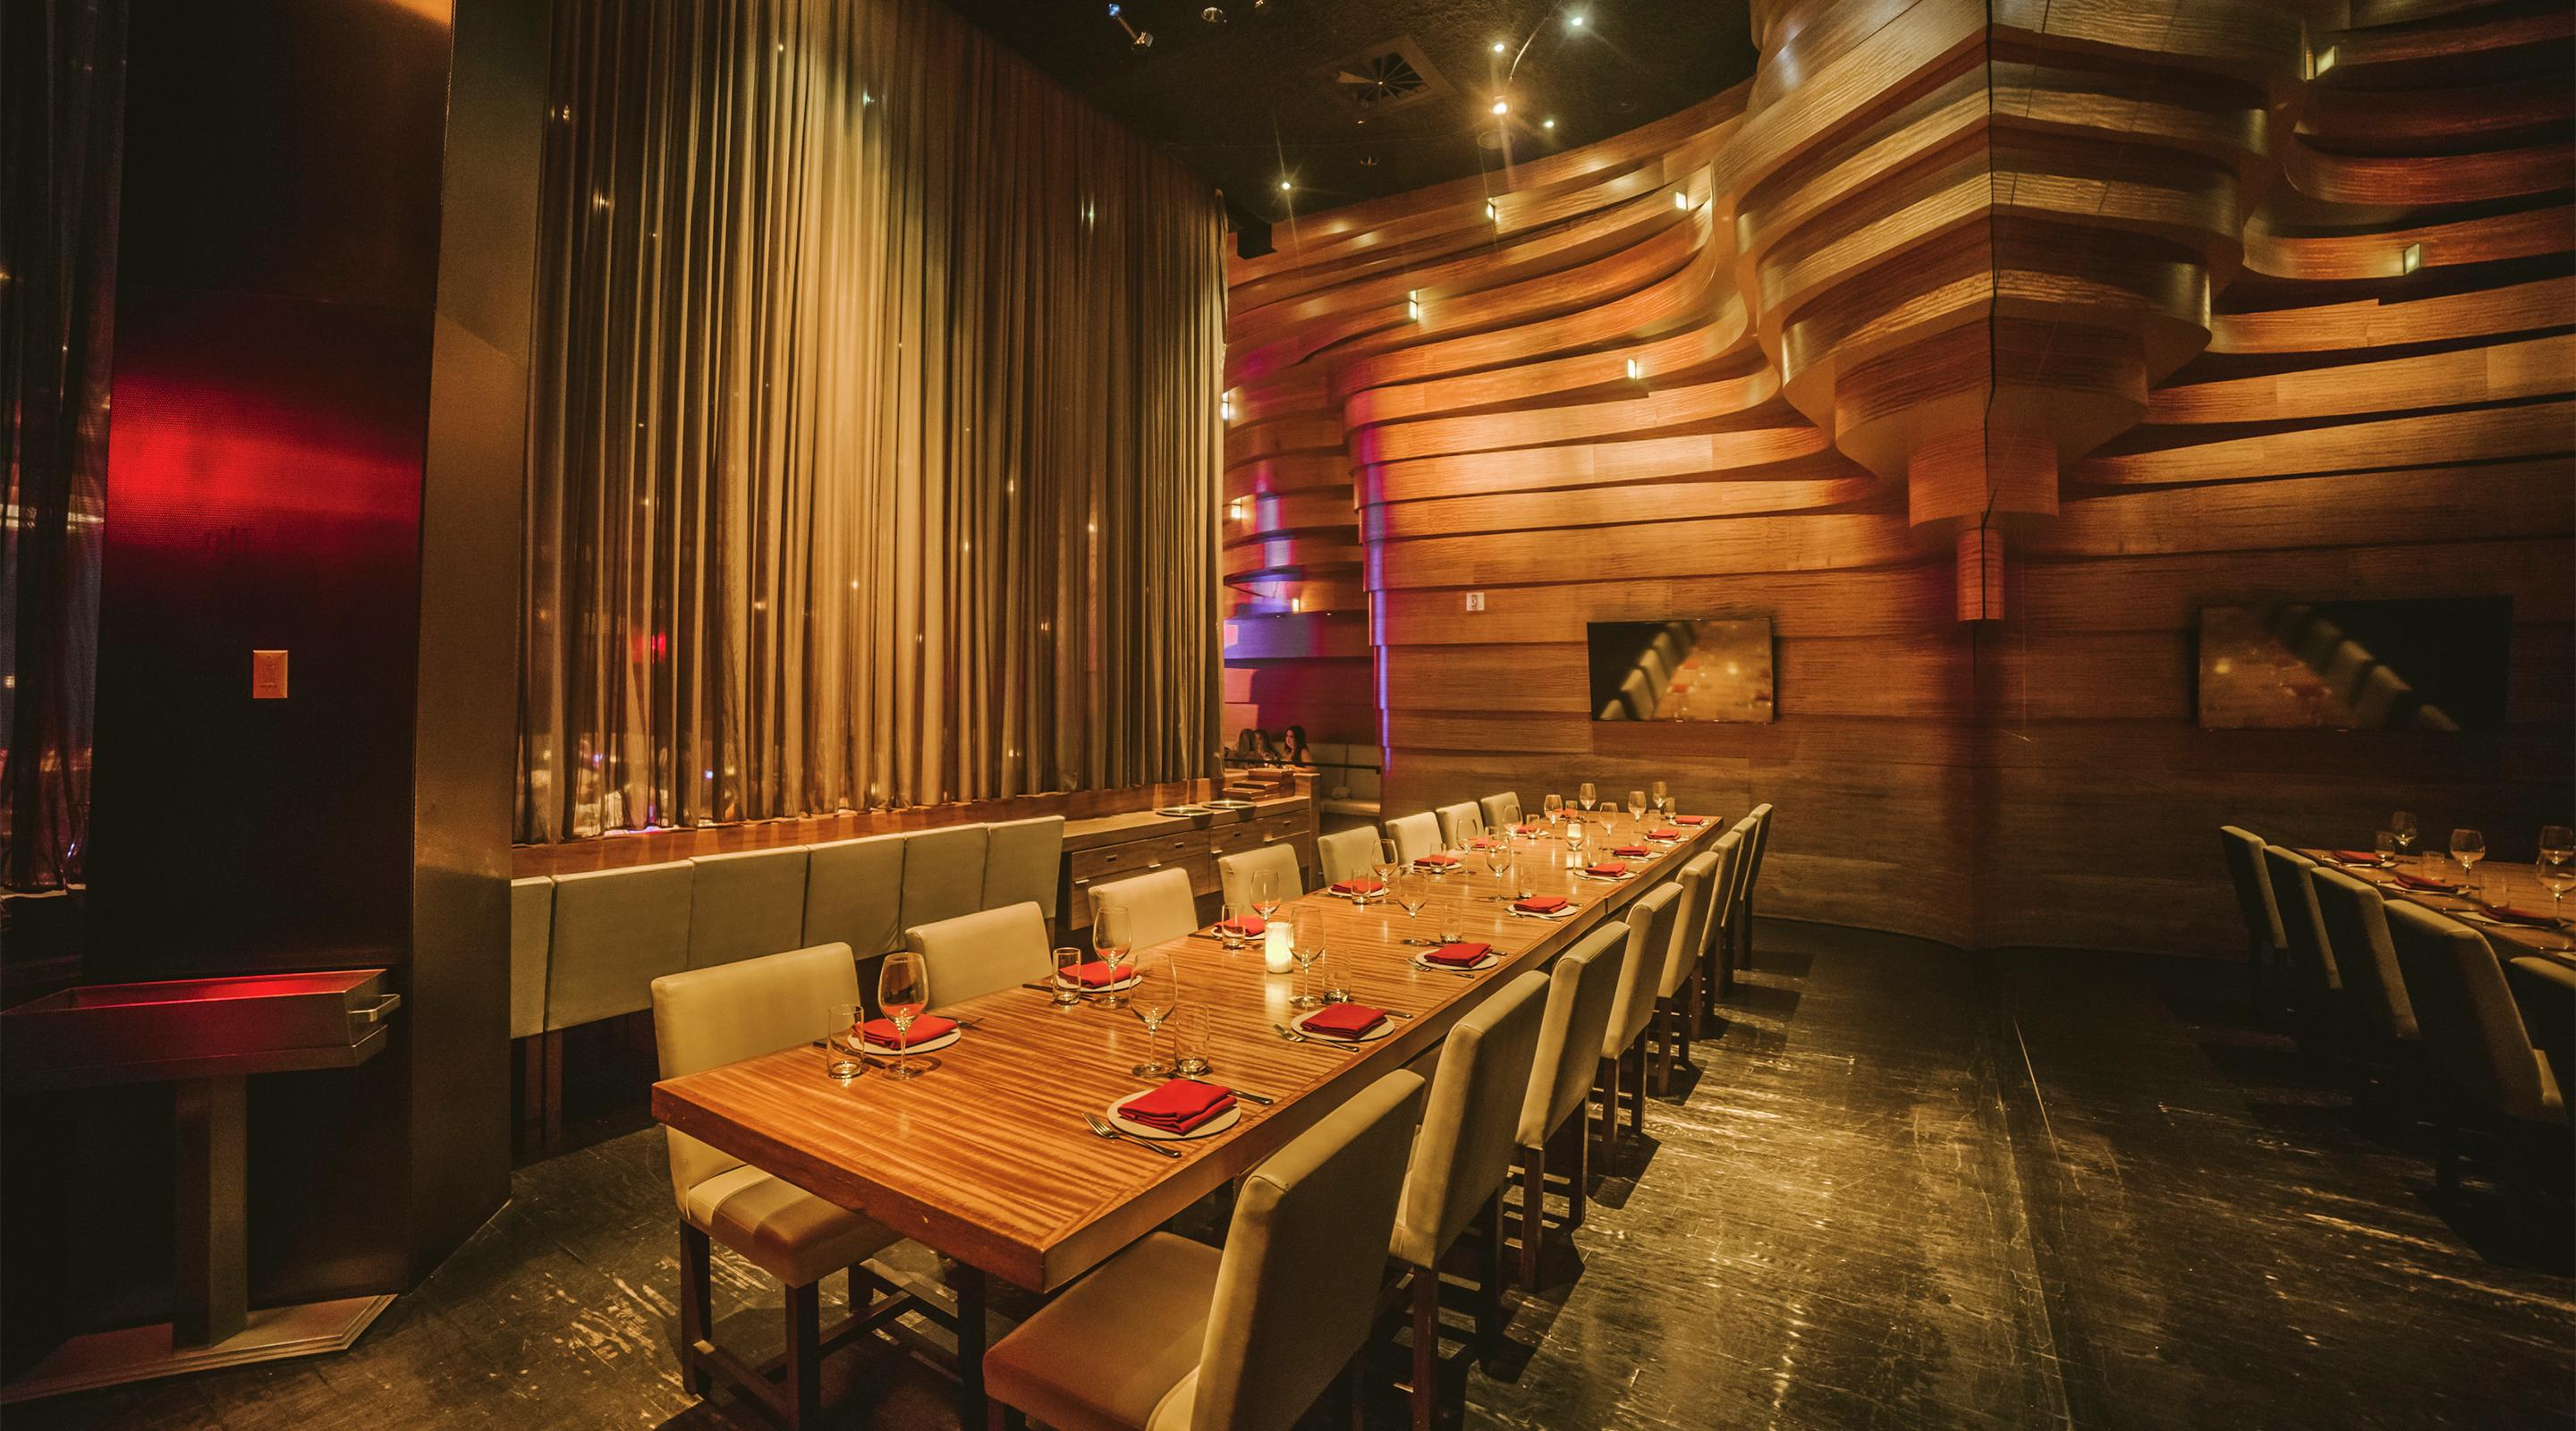 The private dining room at Stack Restaurant & Bar.